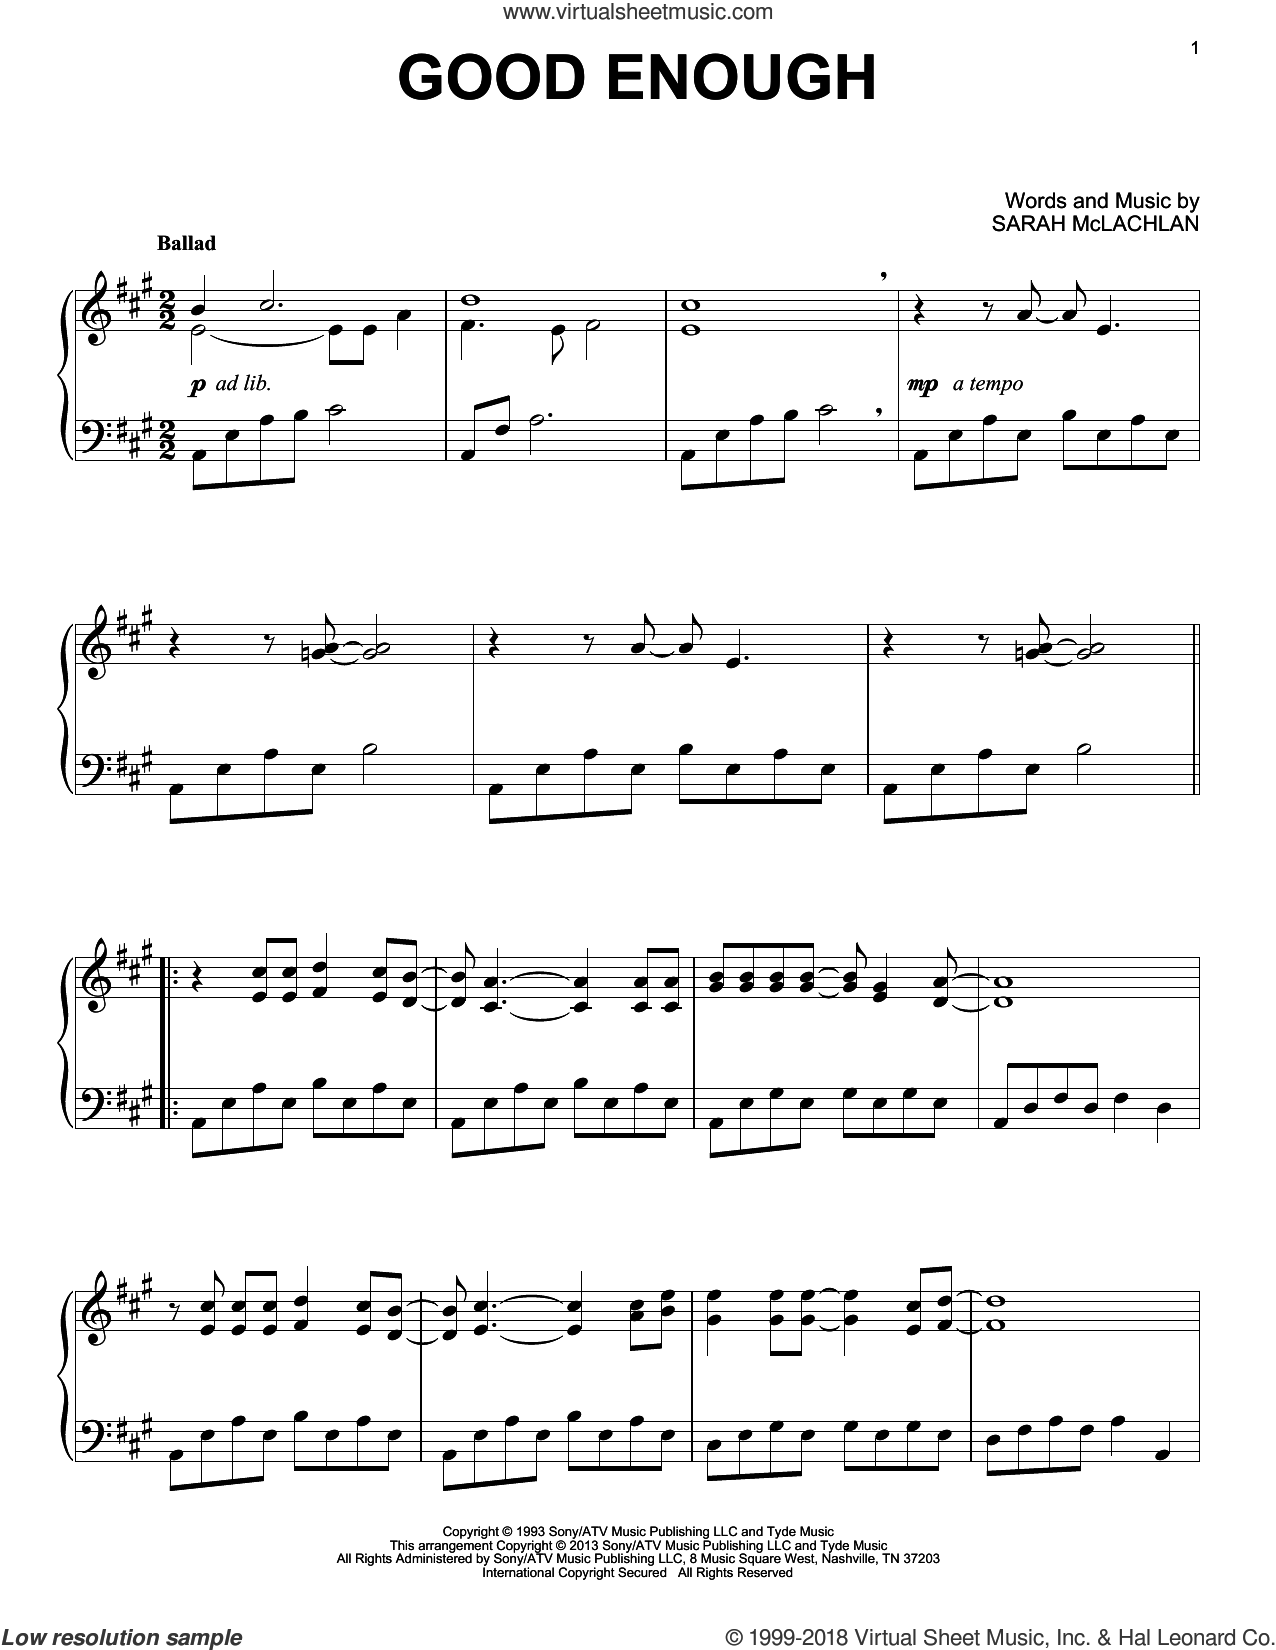 Good Enough sheet music for piano solo by Sarah McLachlan, intermediate skill level